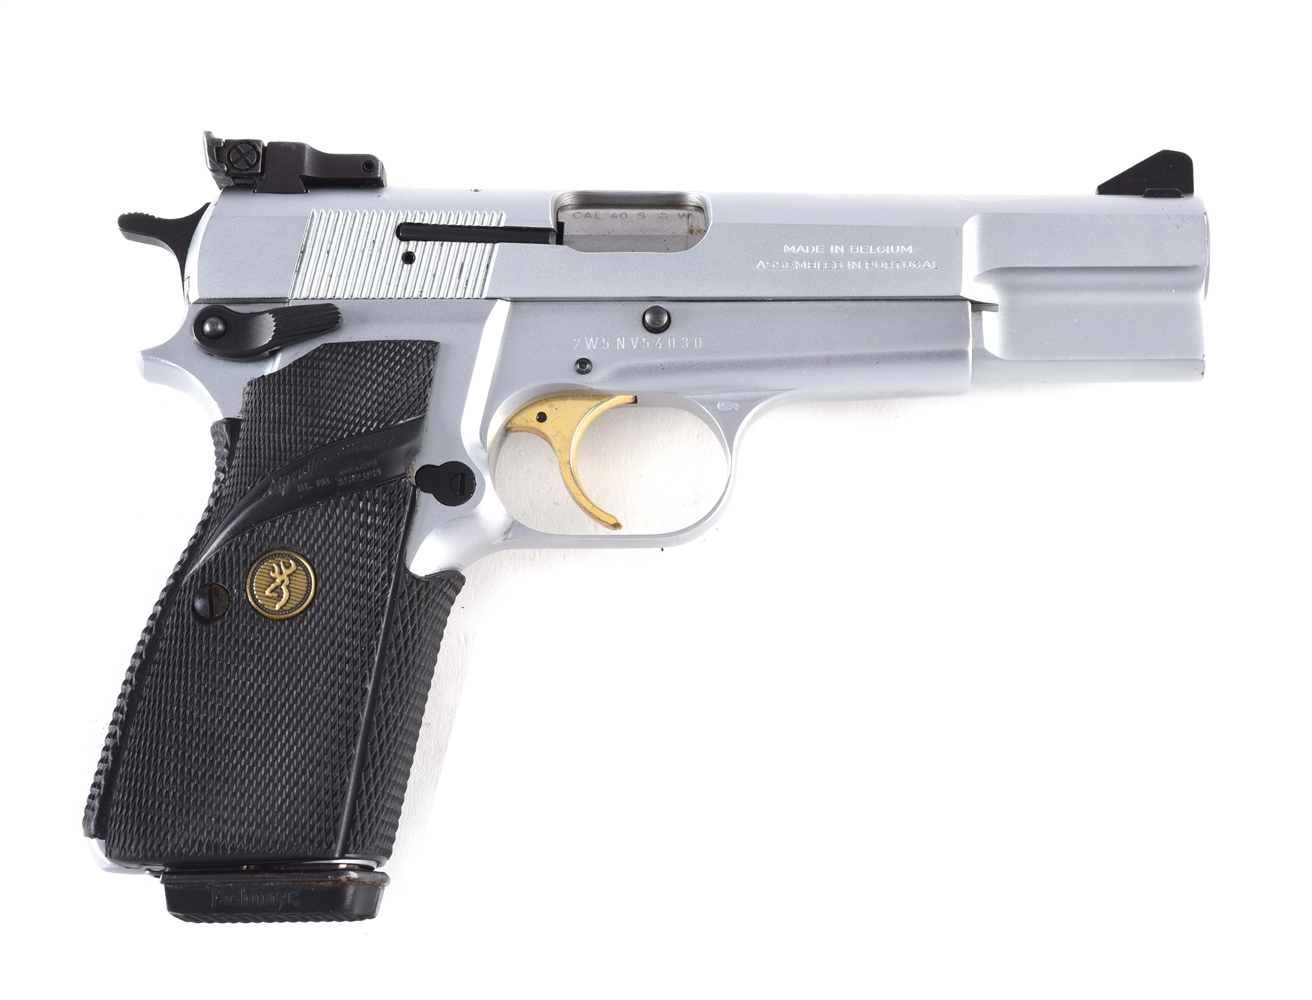 (M) Cased Browning Hi-Power Target Semi-Automatic Pistol.